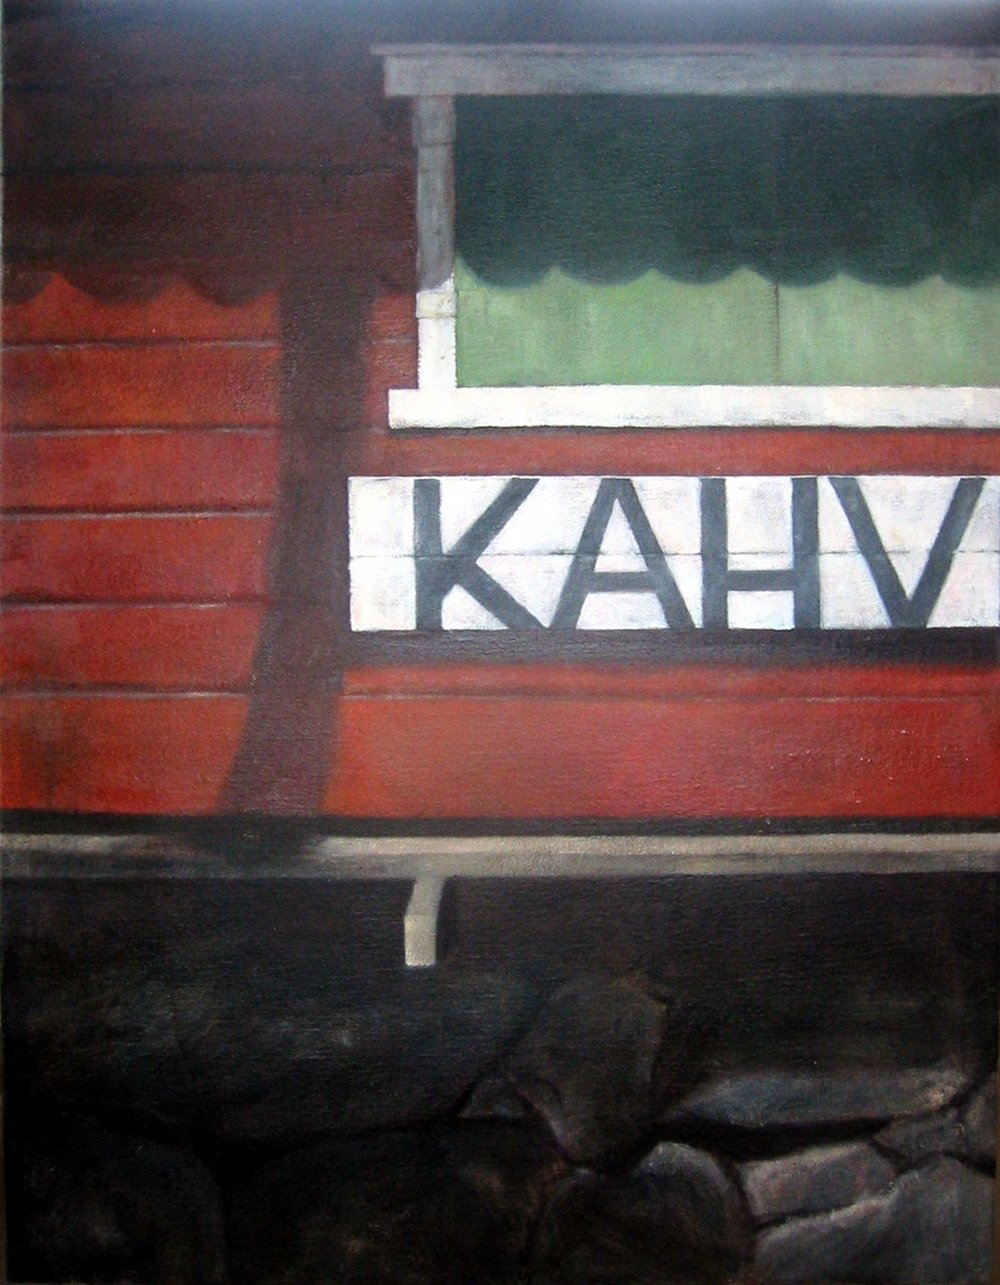 Exterior from café   Oil on canvas   130 x 100 cm 2005